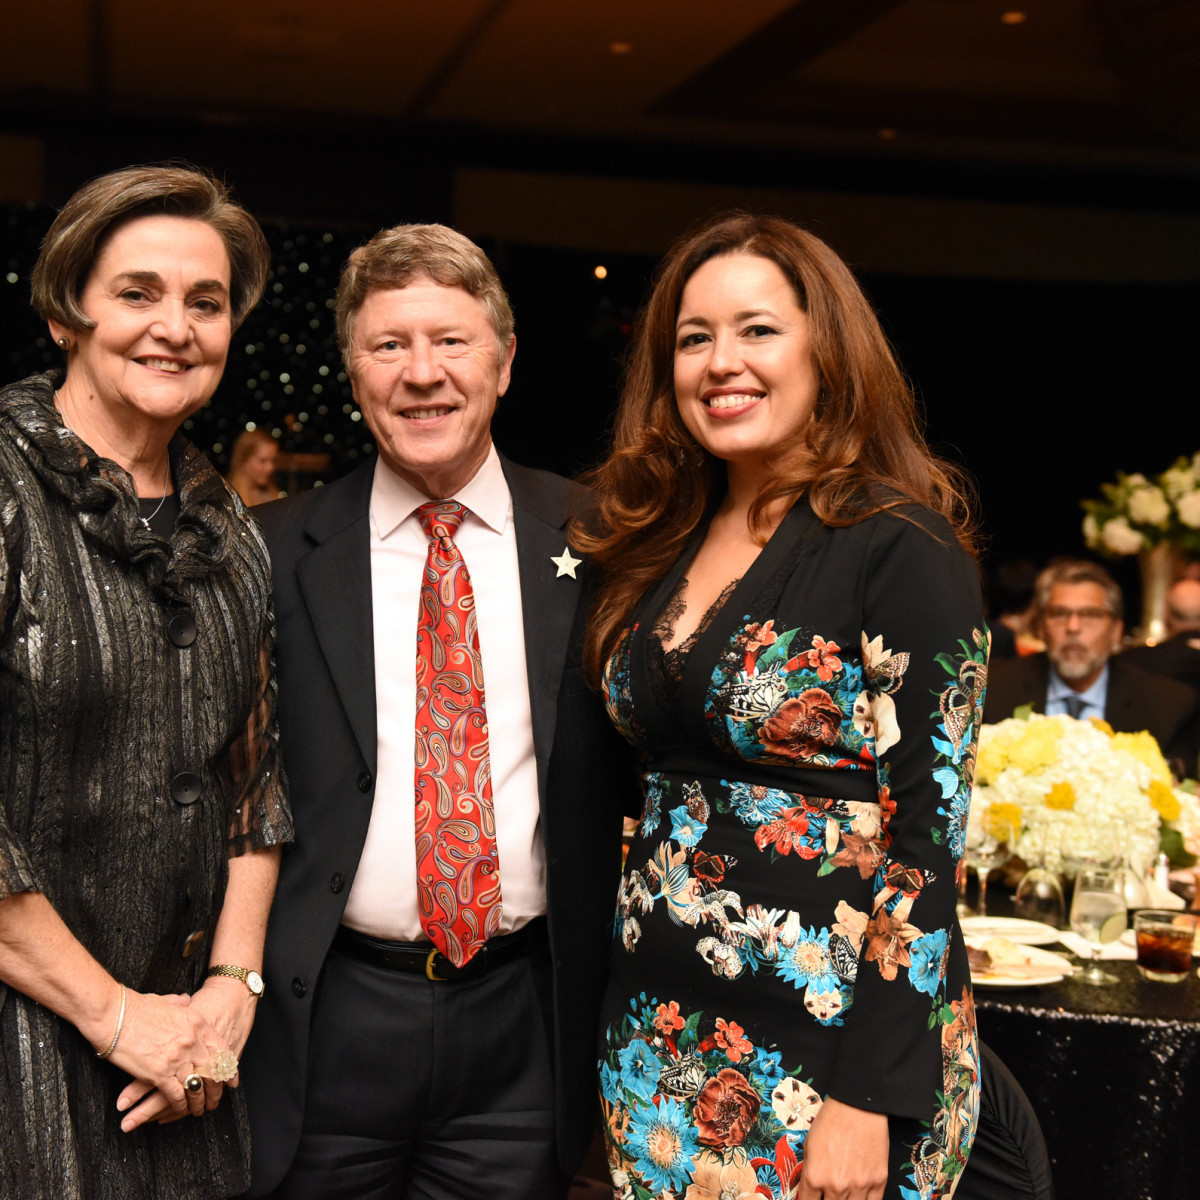 Houston, SER job for progress, October 2015, Gwen Emmett, Judge Ed Emmett and Nory Angel.